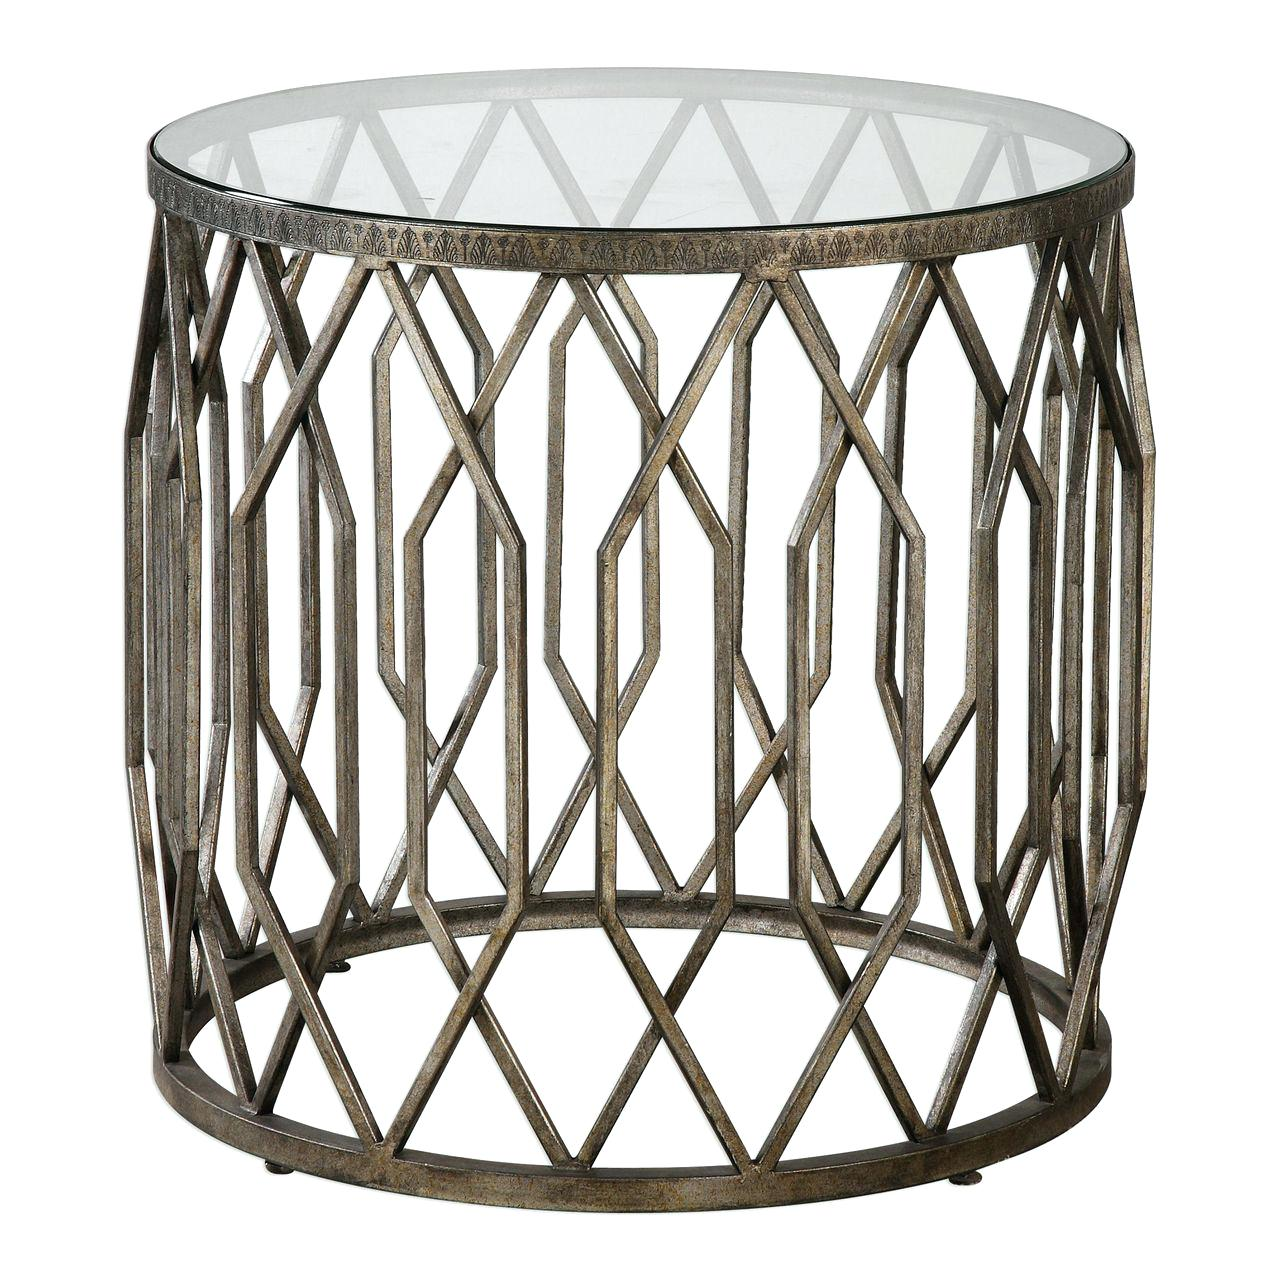 drum accent table gold cala hammered threshold metal target silver pottery barn side storage frog small cabinet desk combo brass finish coffee glass center round cover tyndall